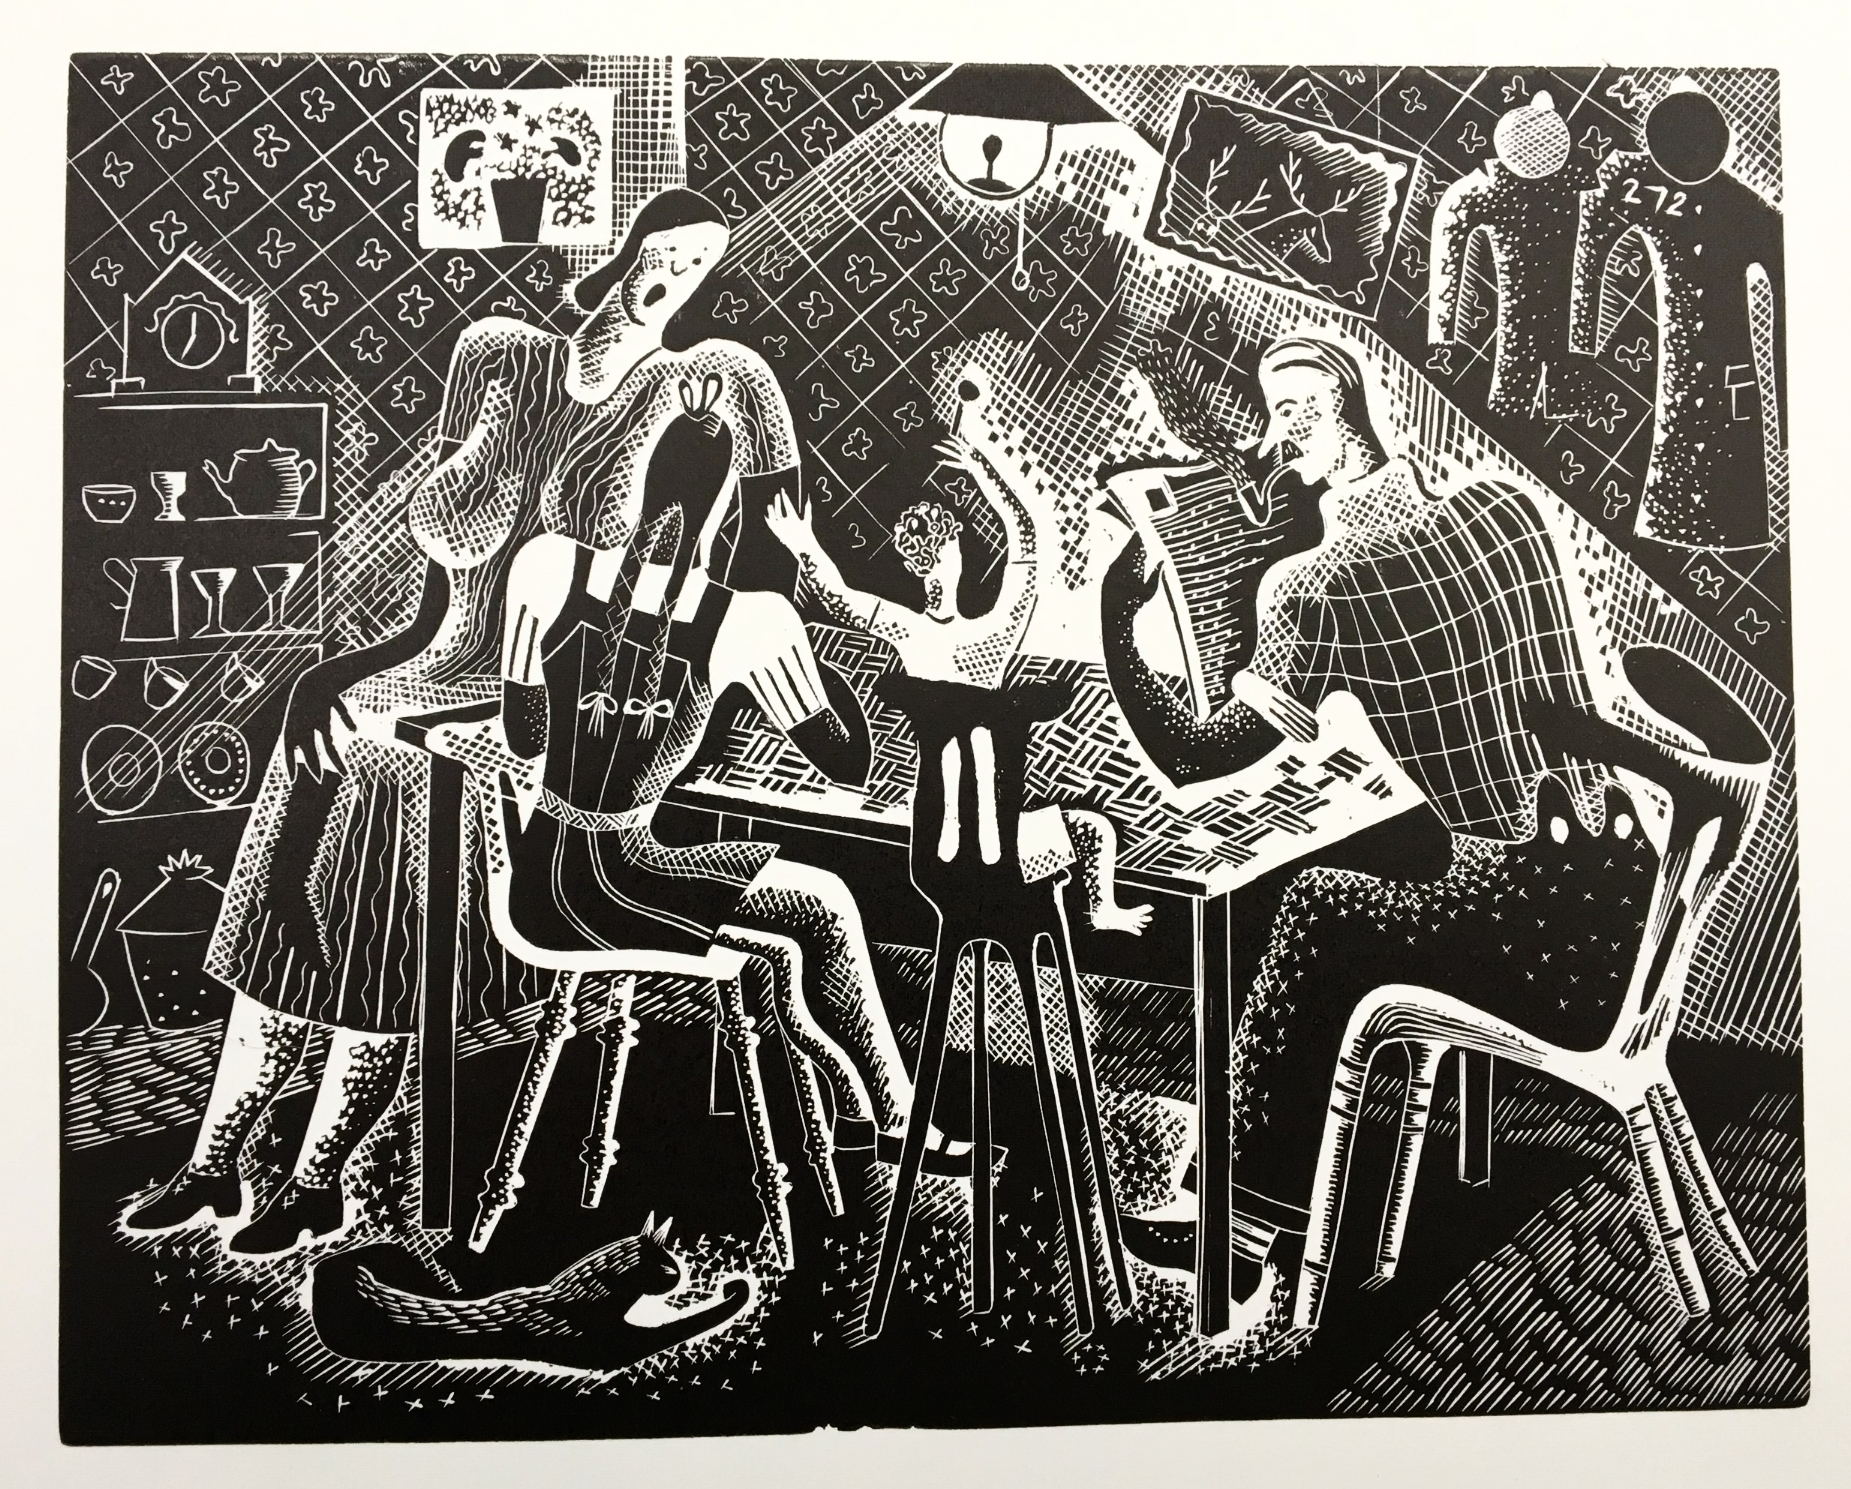 The Busman's Holiday - wood engraving 14 cms x 18 cmsA domestic scene infused with vitality by the tilting lines and gesticulating figures. Even the cat is on the alert.£195